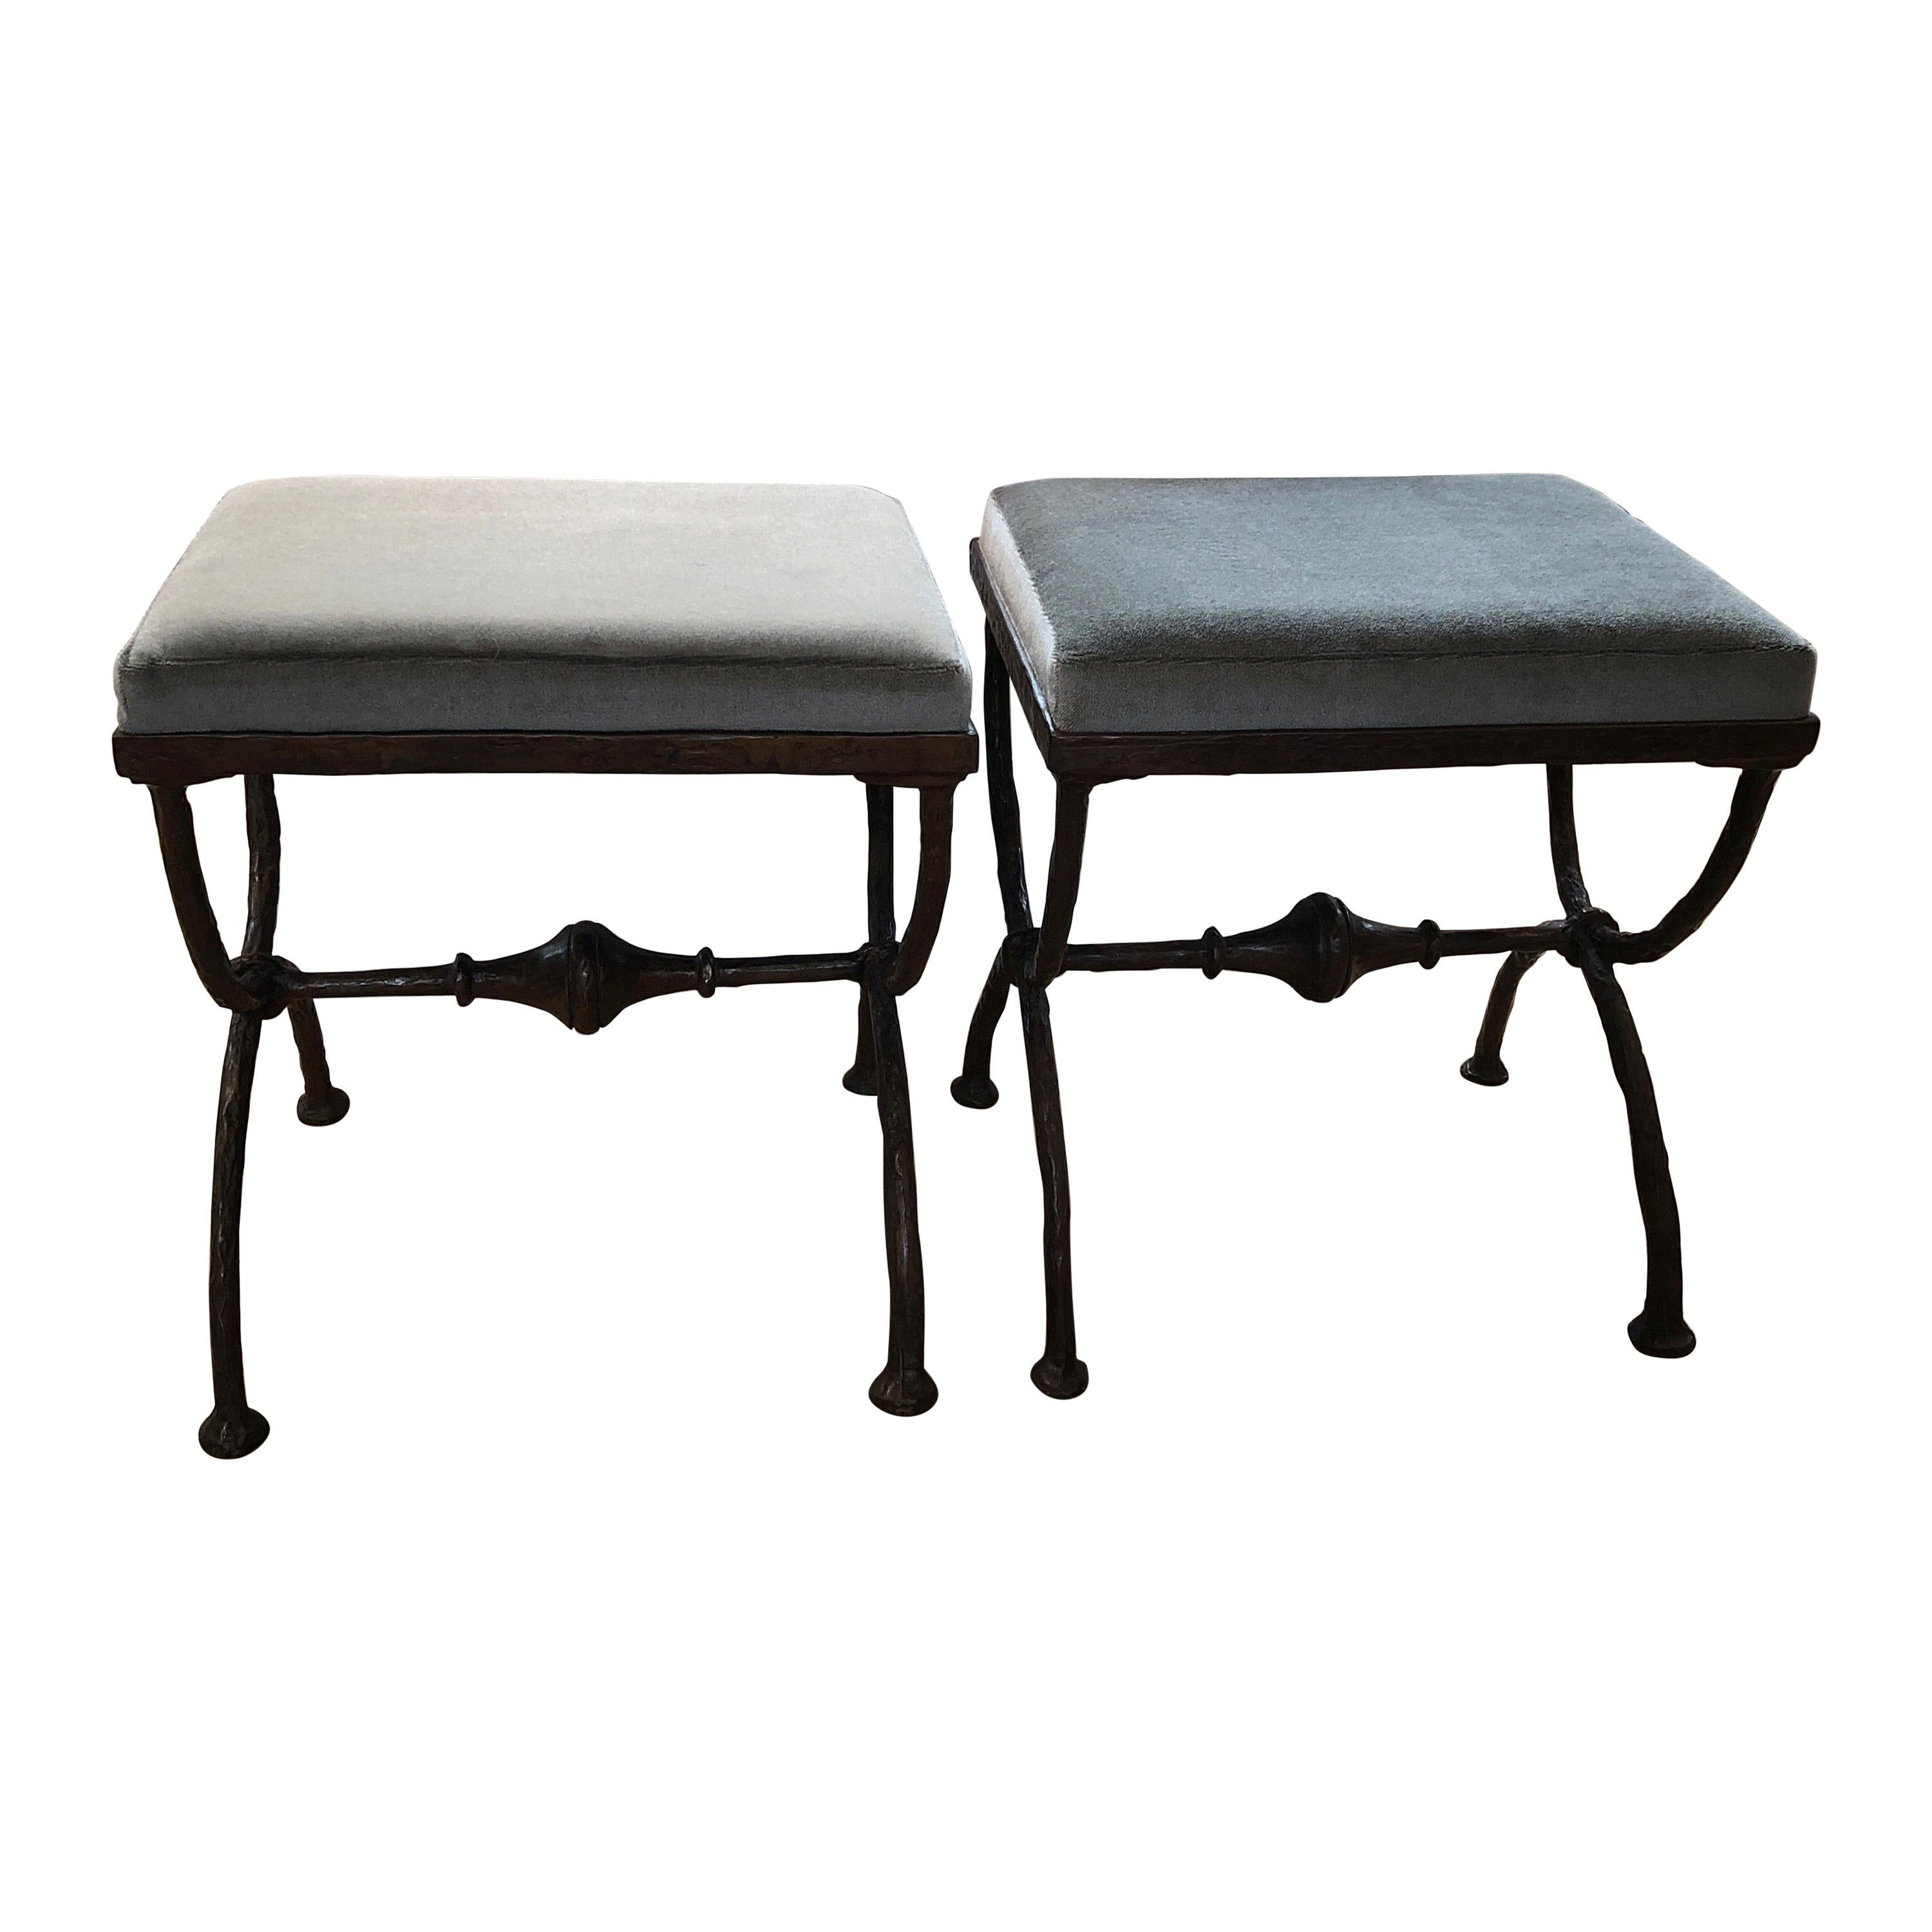 """Pair of """"X-Form"""" Ottoman or Stools, Mohair Upholstery, Style of Giacometti"""